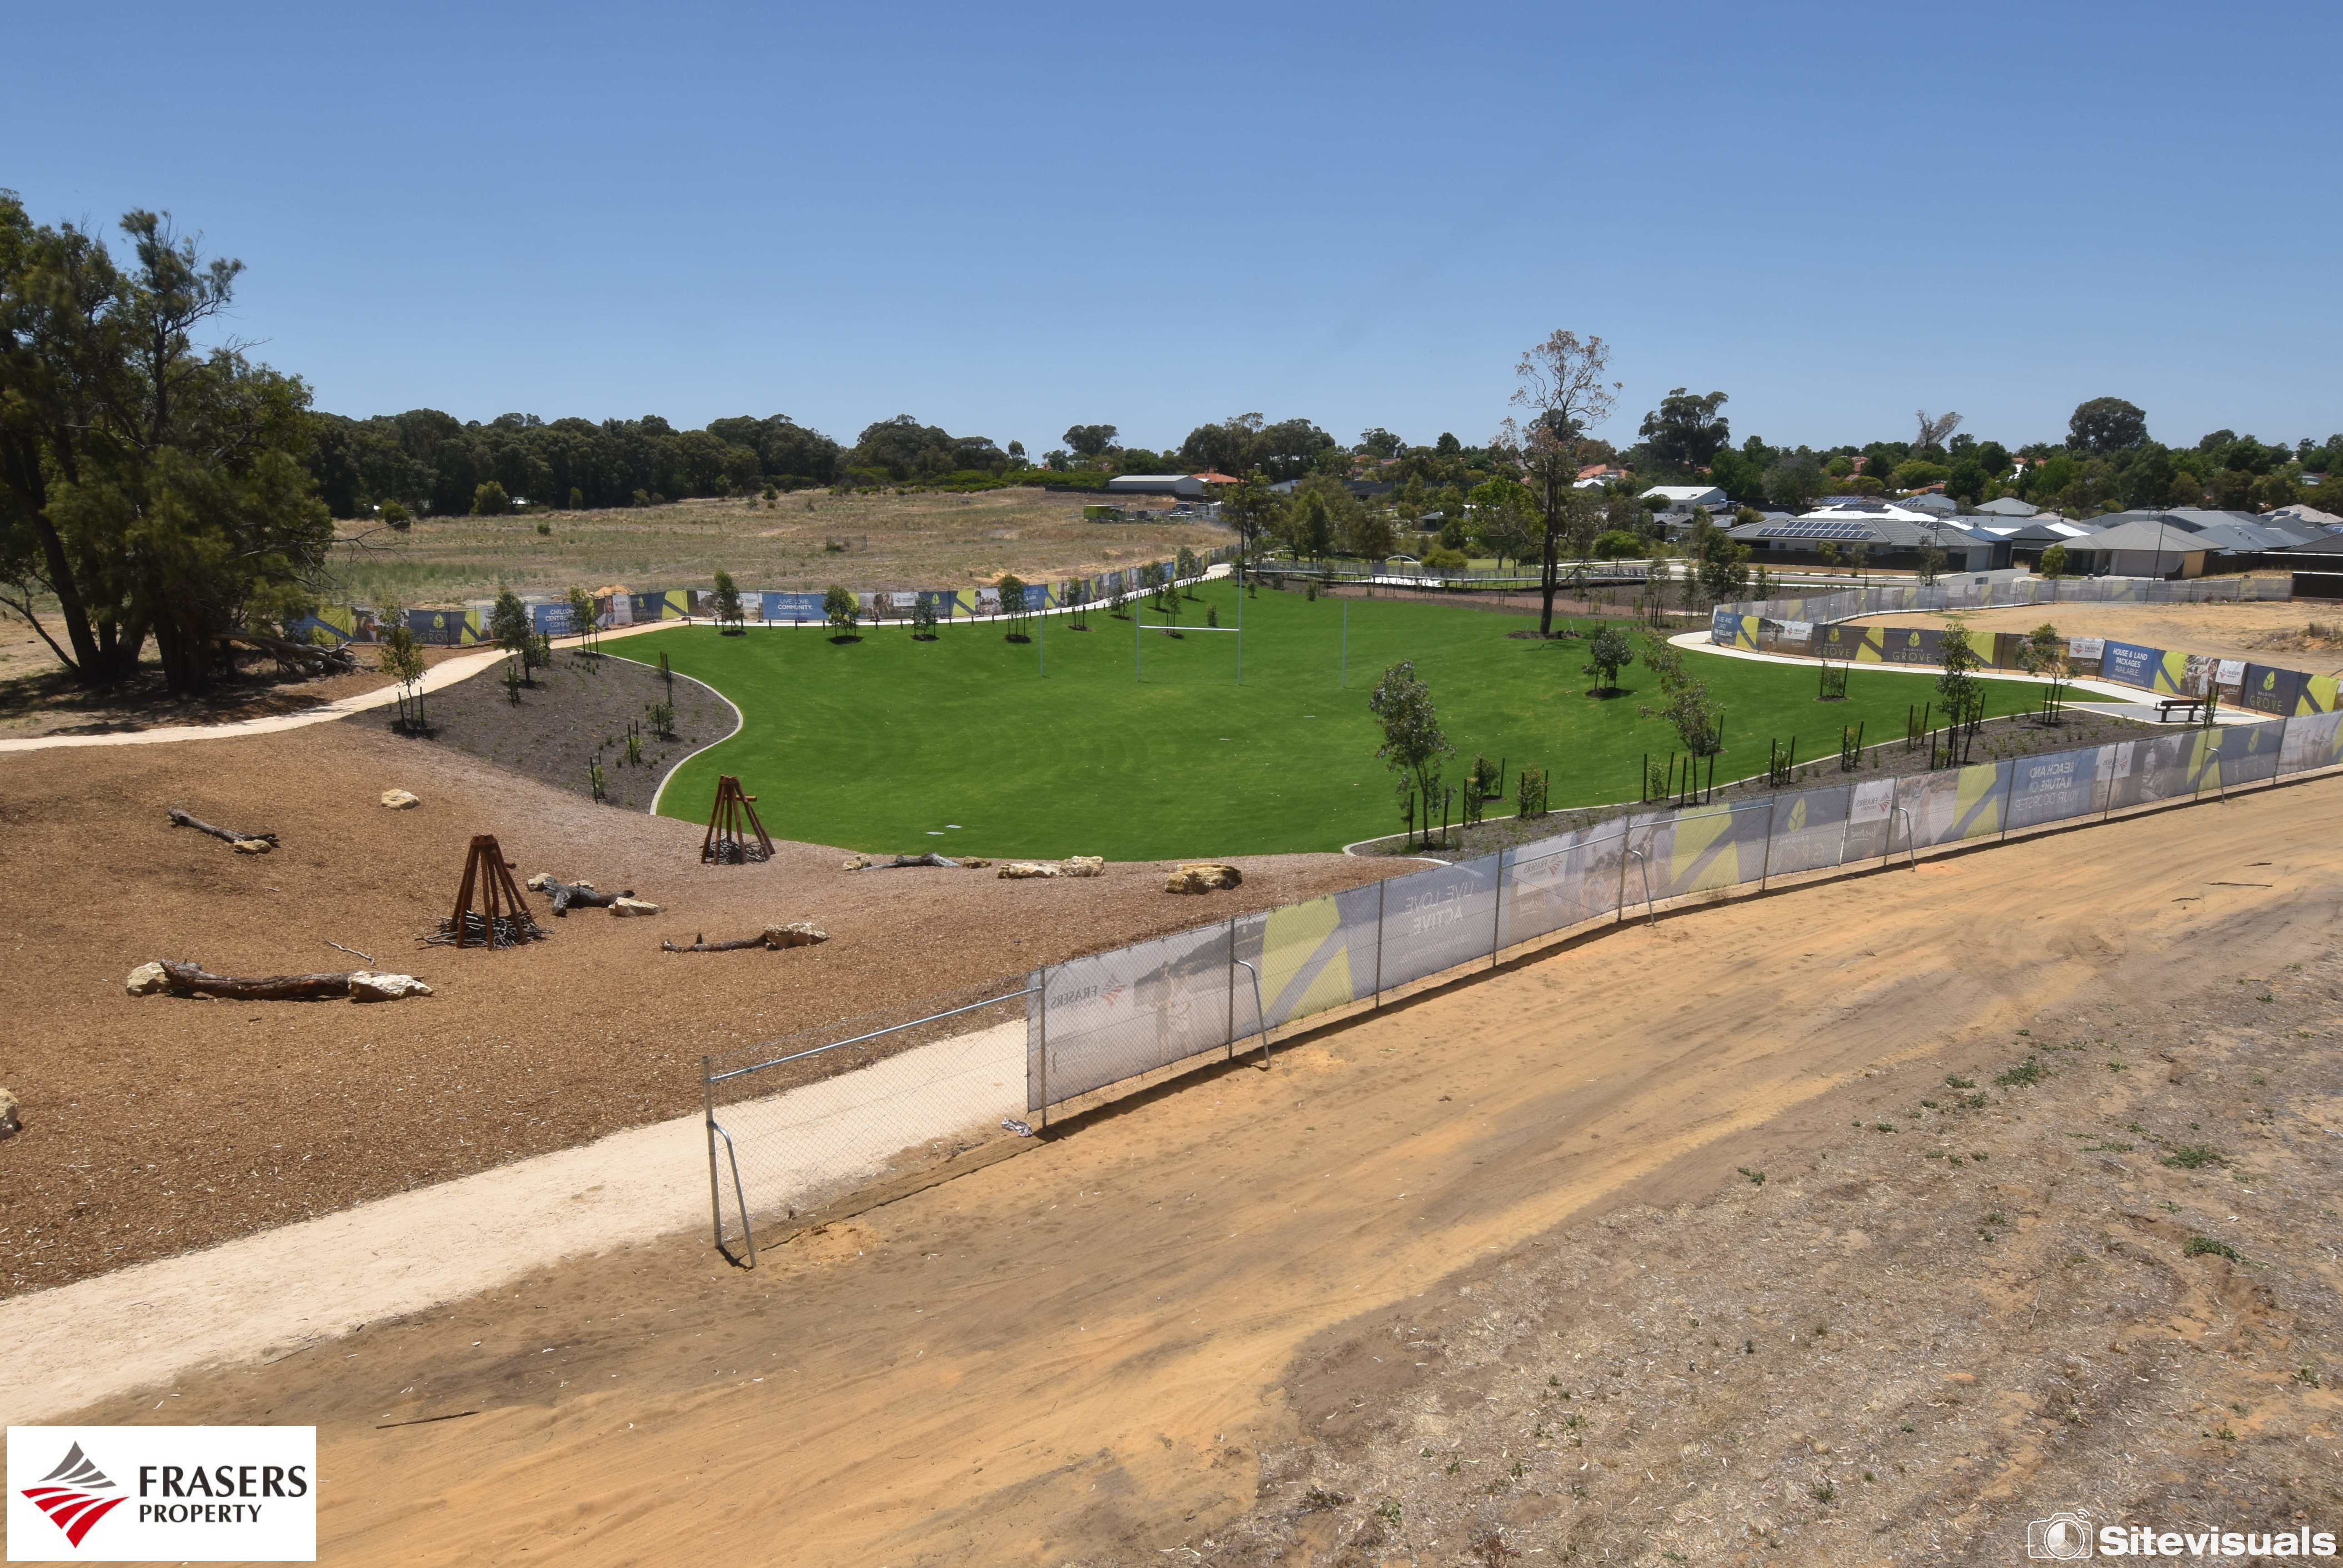 Frasers Baldivis Grove, Baldivis Grove POS (Finished), 16-Dec-2020 11:30 am